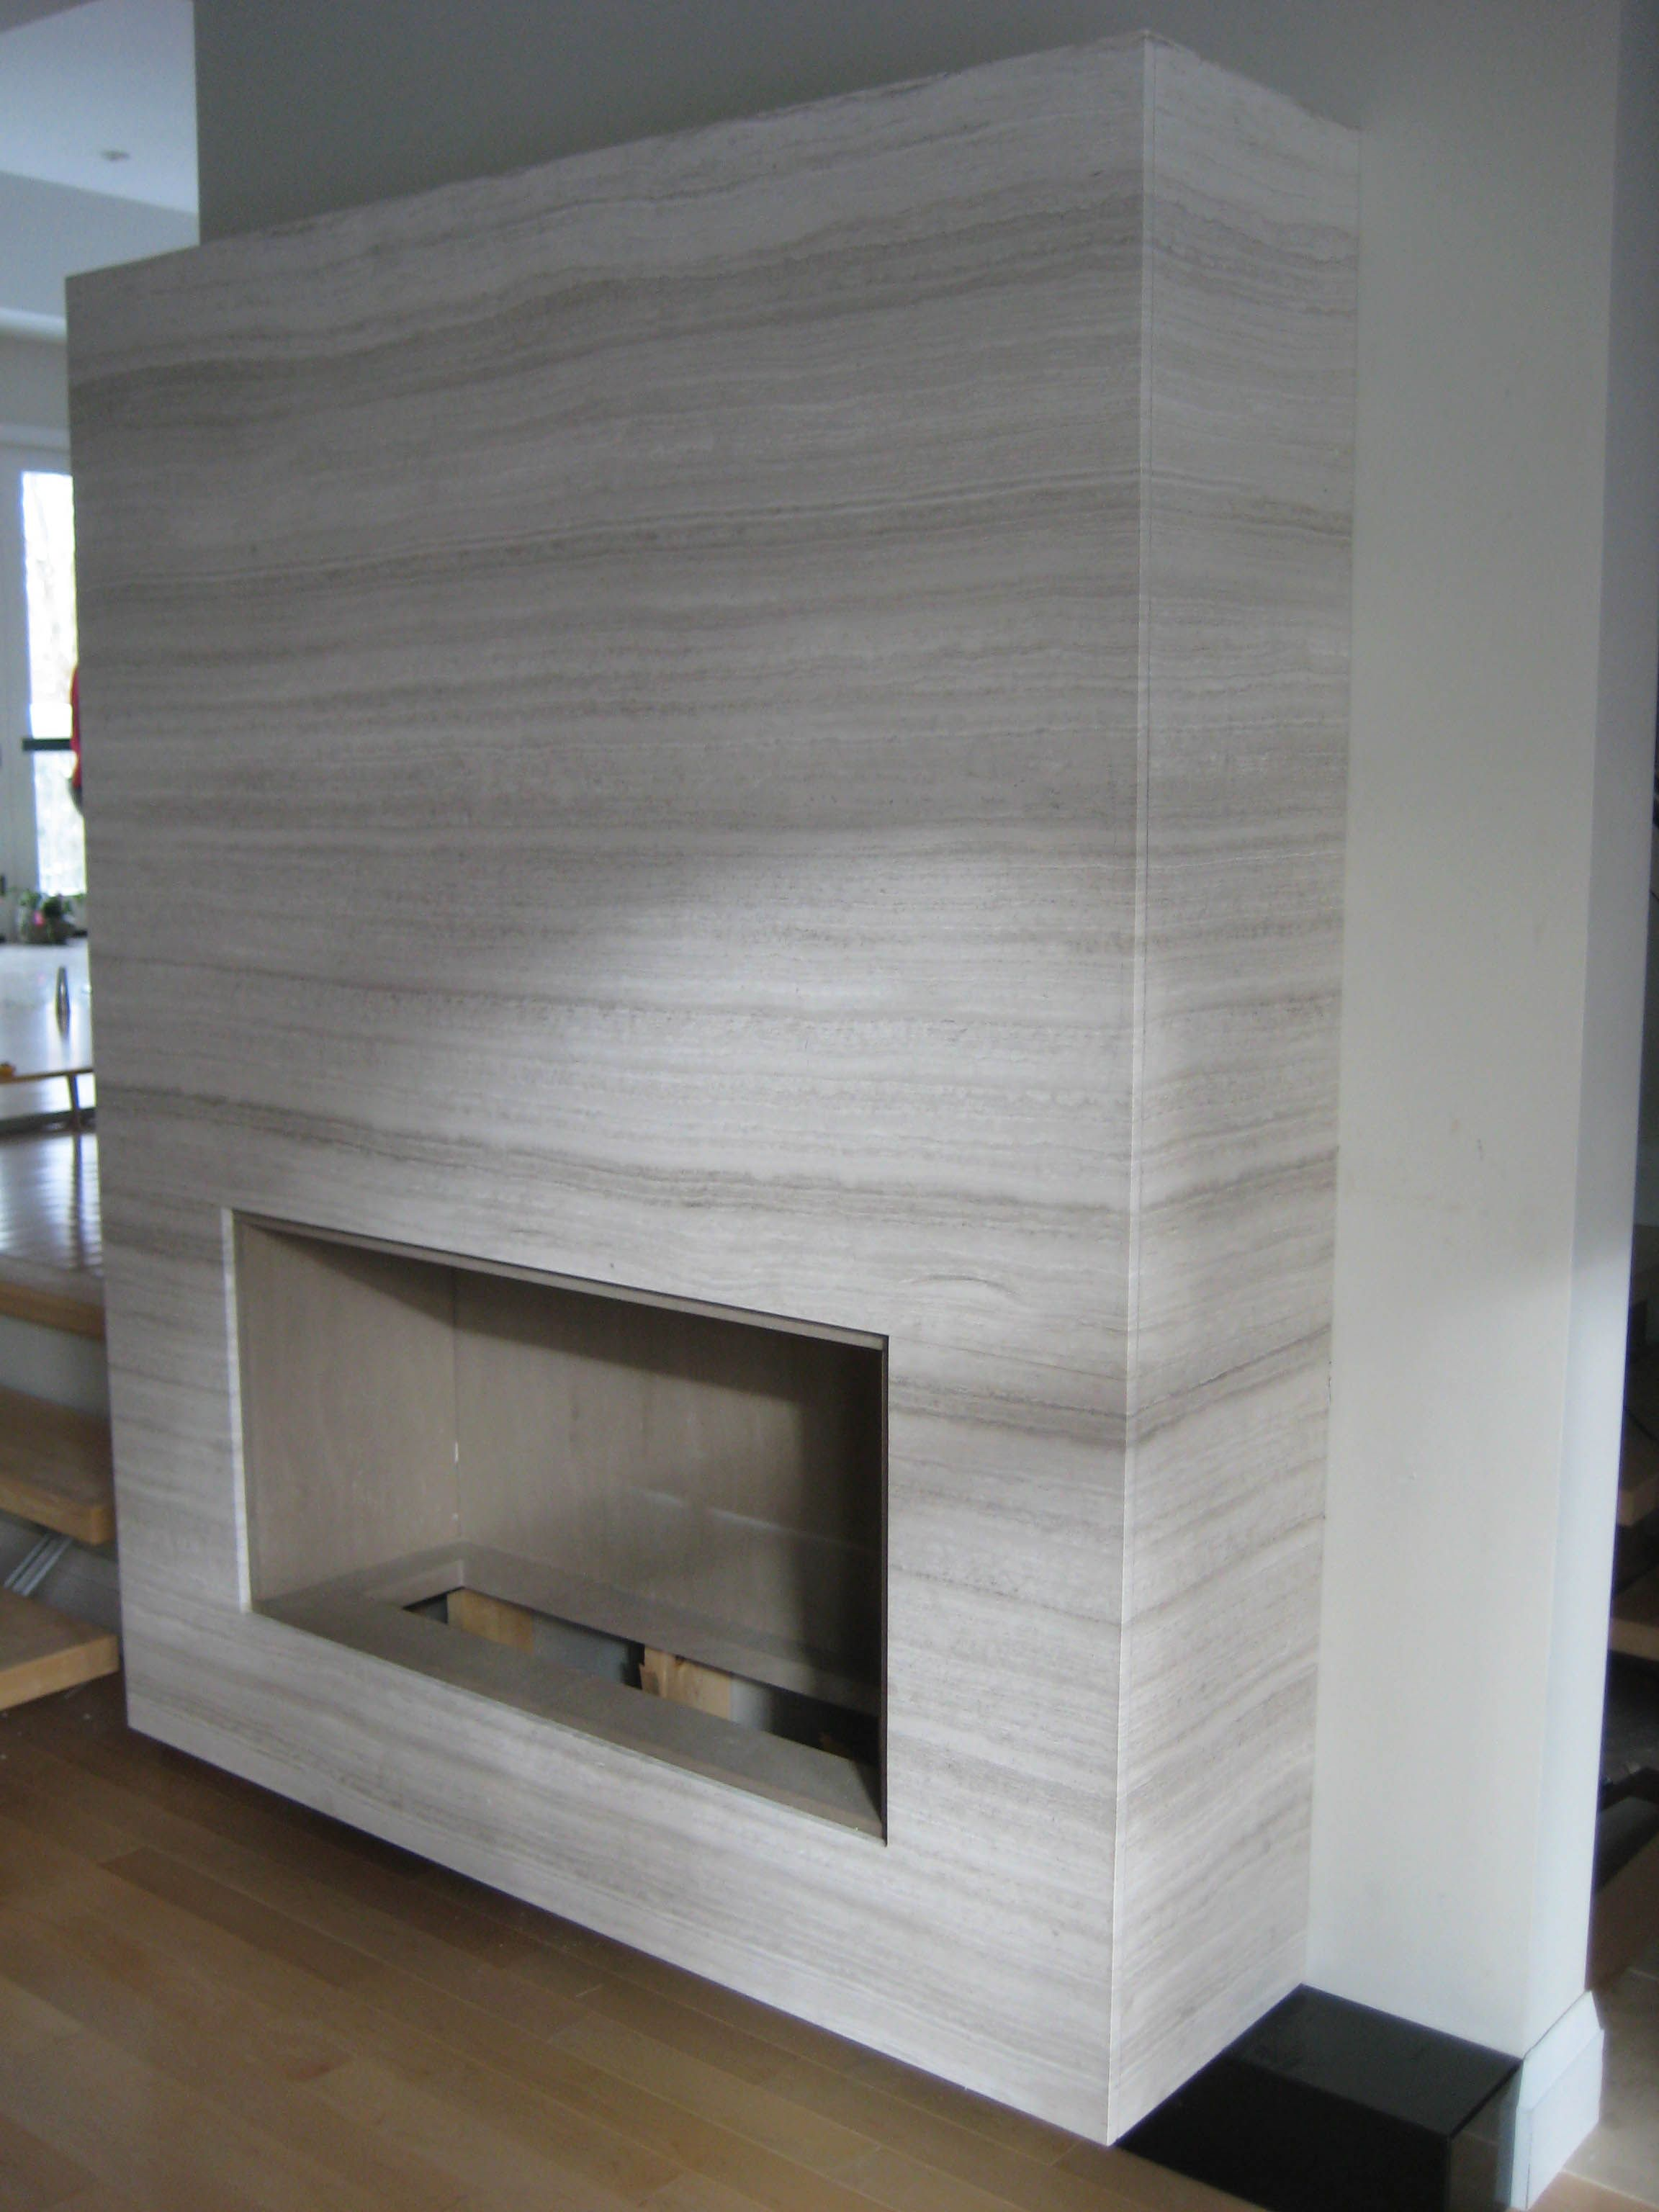 Fireplace Surround Made With Bianco Milano Marble Biancomilano Marble Linear Naturalstone Modern Fireplace Fireplace Design Fireplace Surrounds